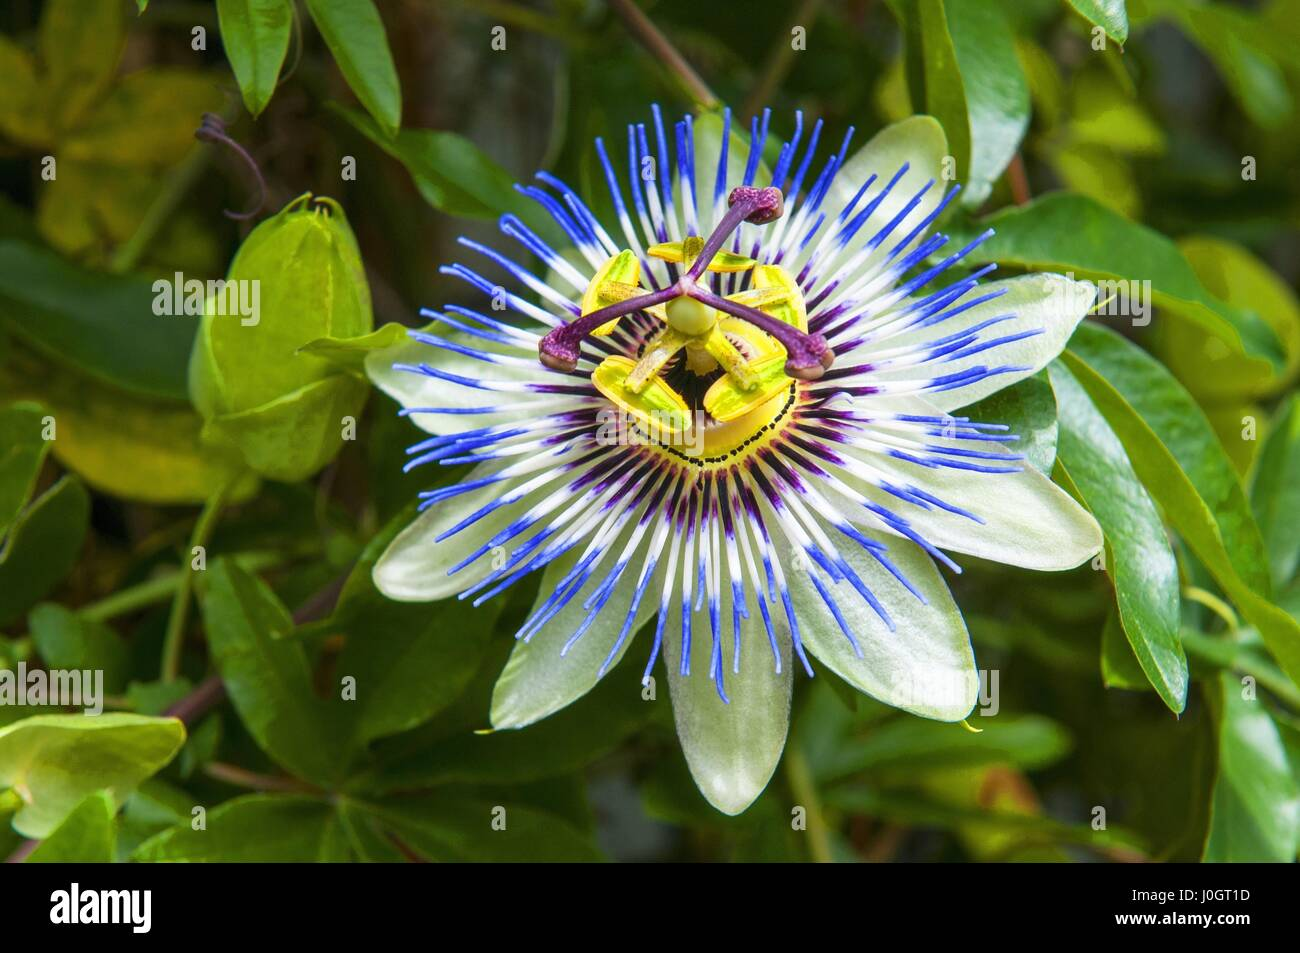 Passiflora Caerulea The Blue Passionflower Bluecrown Passionflower